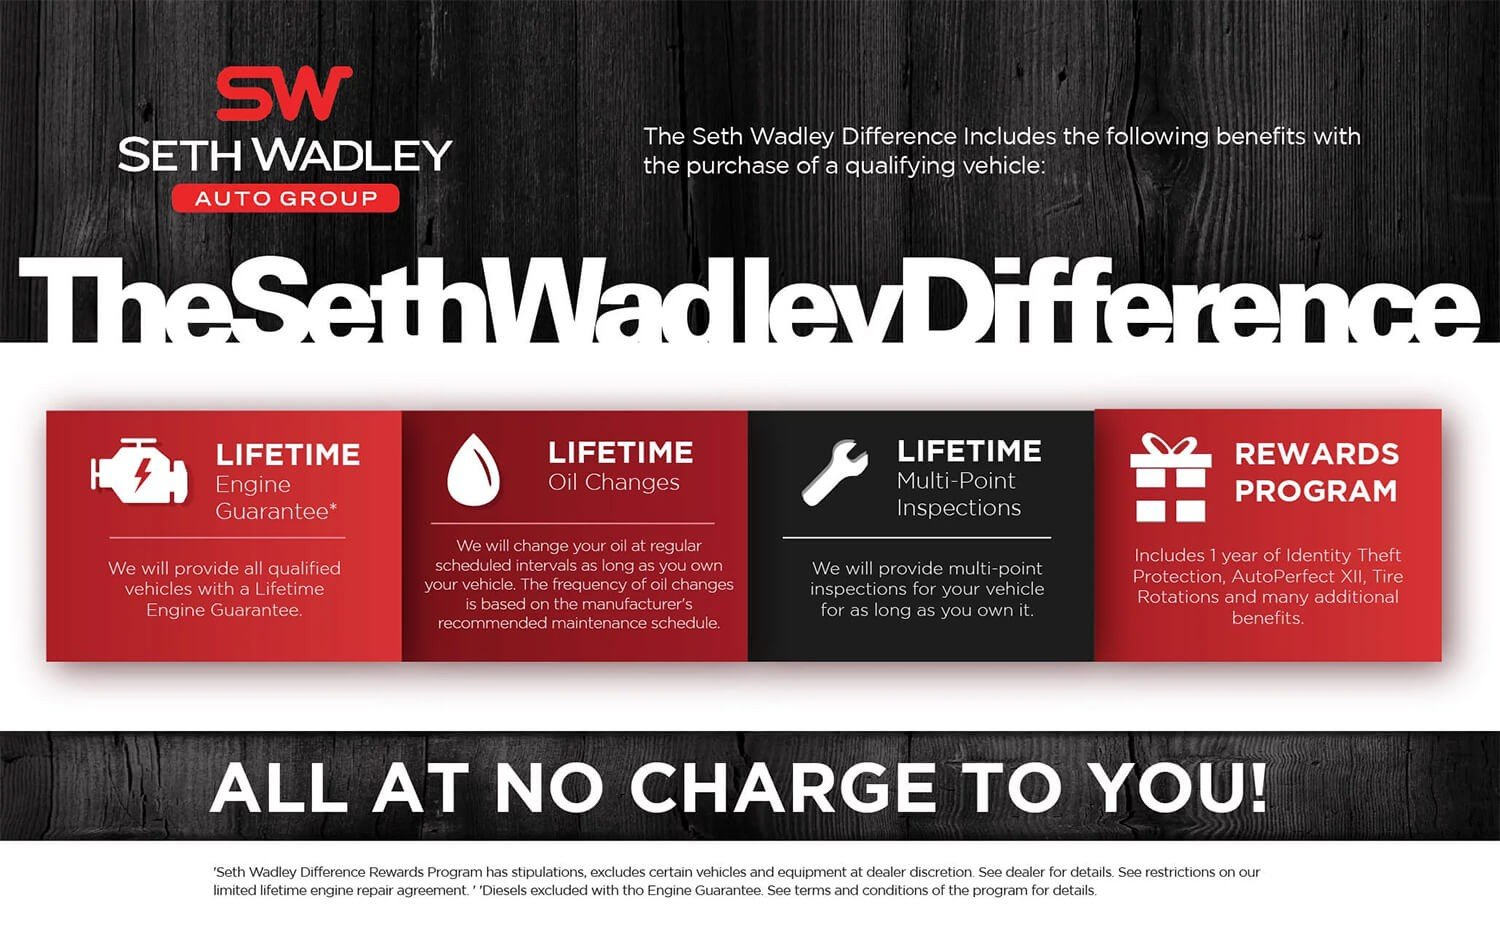 The Seth Wadley Difference